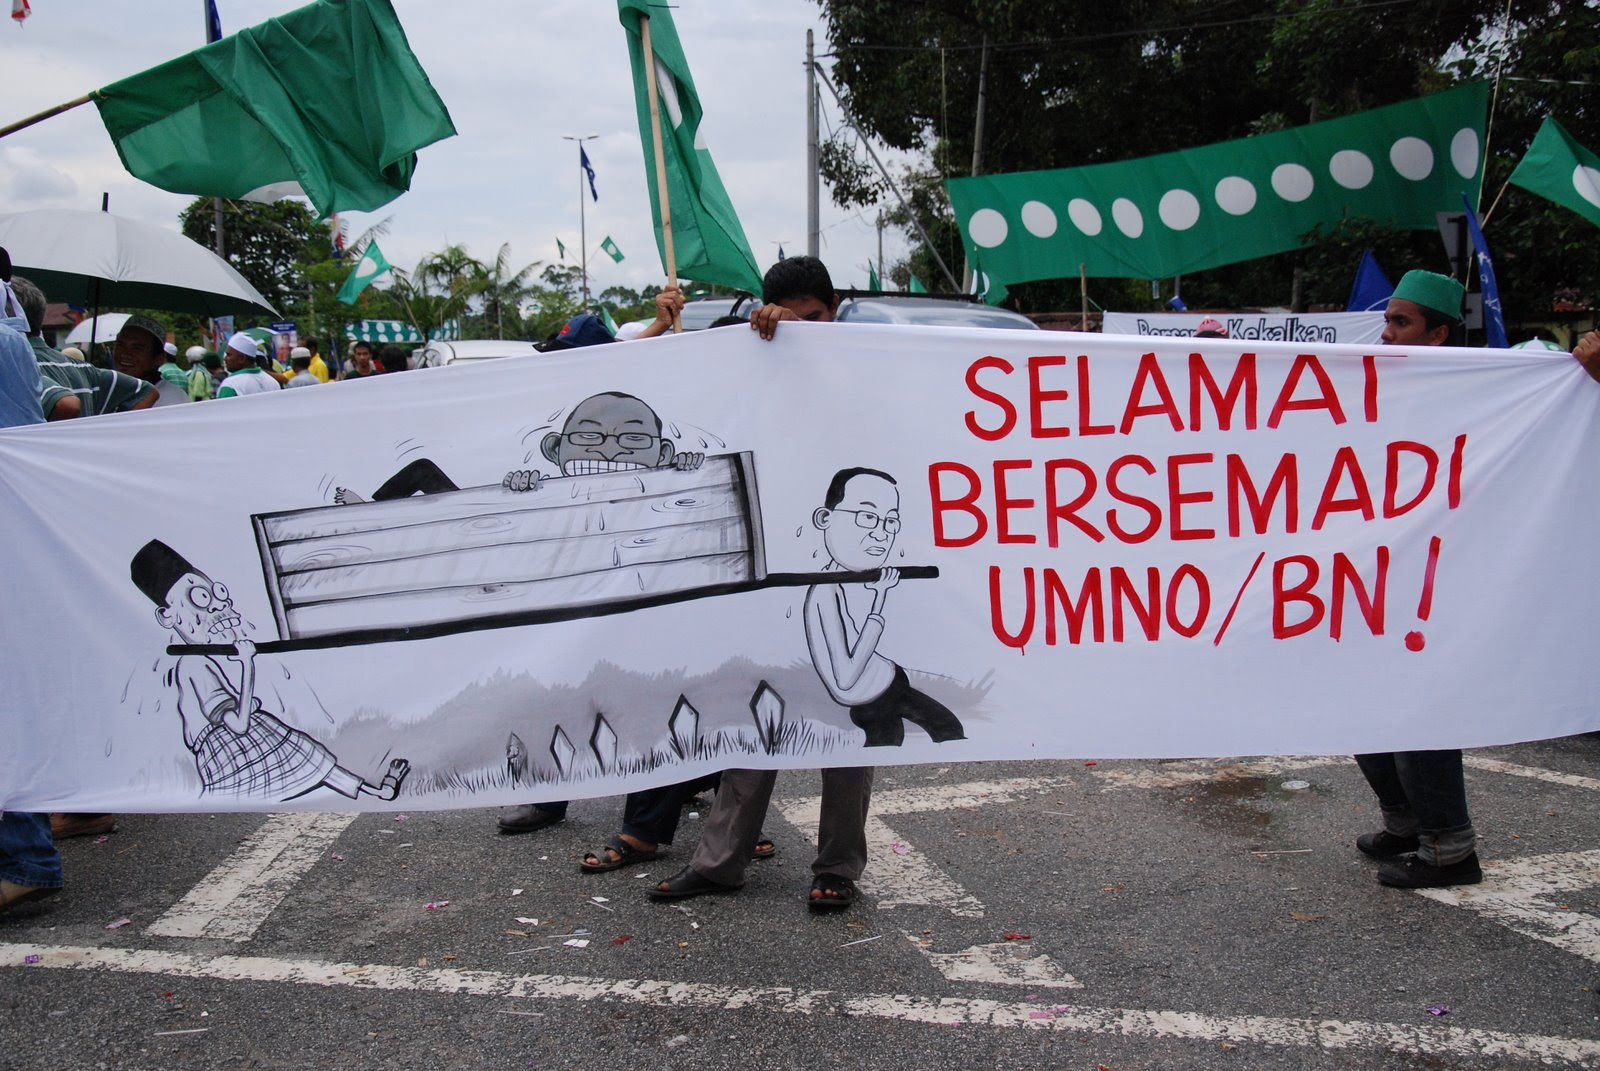 http://pinkturtle2.files.wordpress.com/2009/04/kubur-umno.jpg